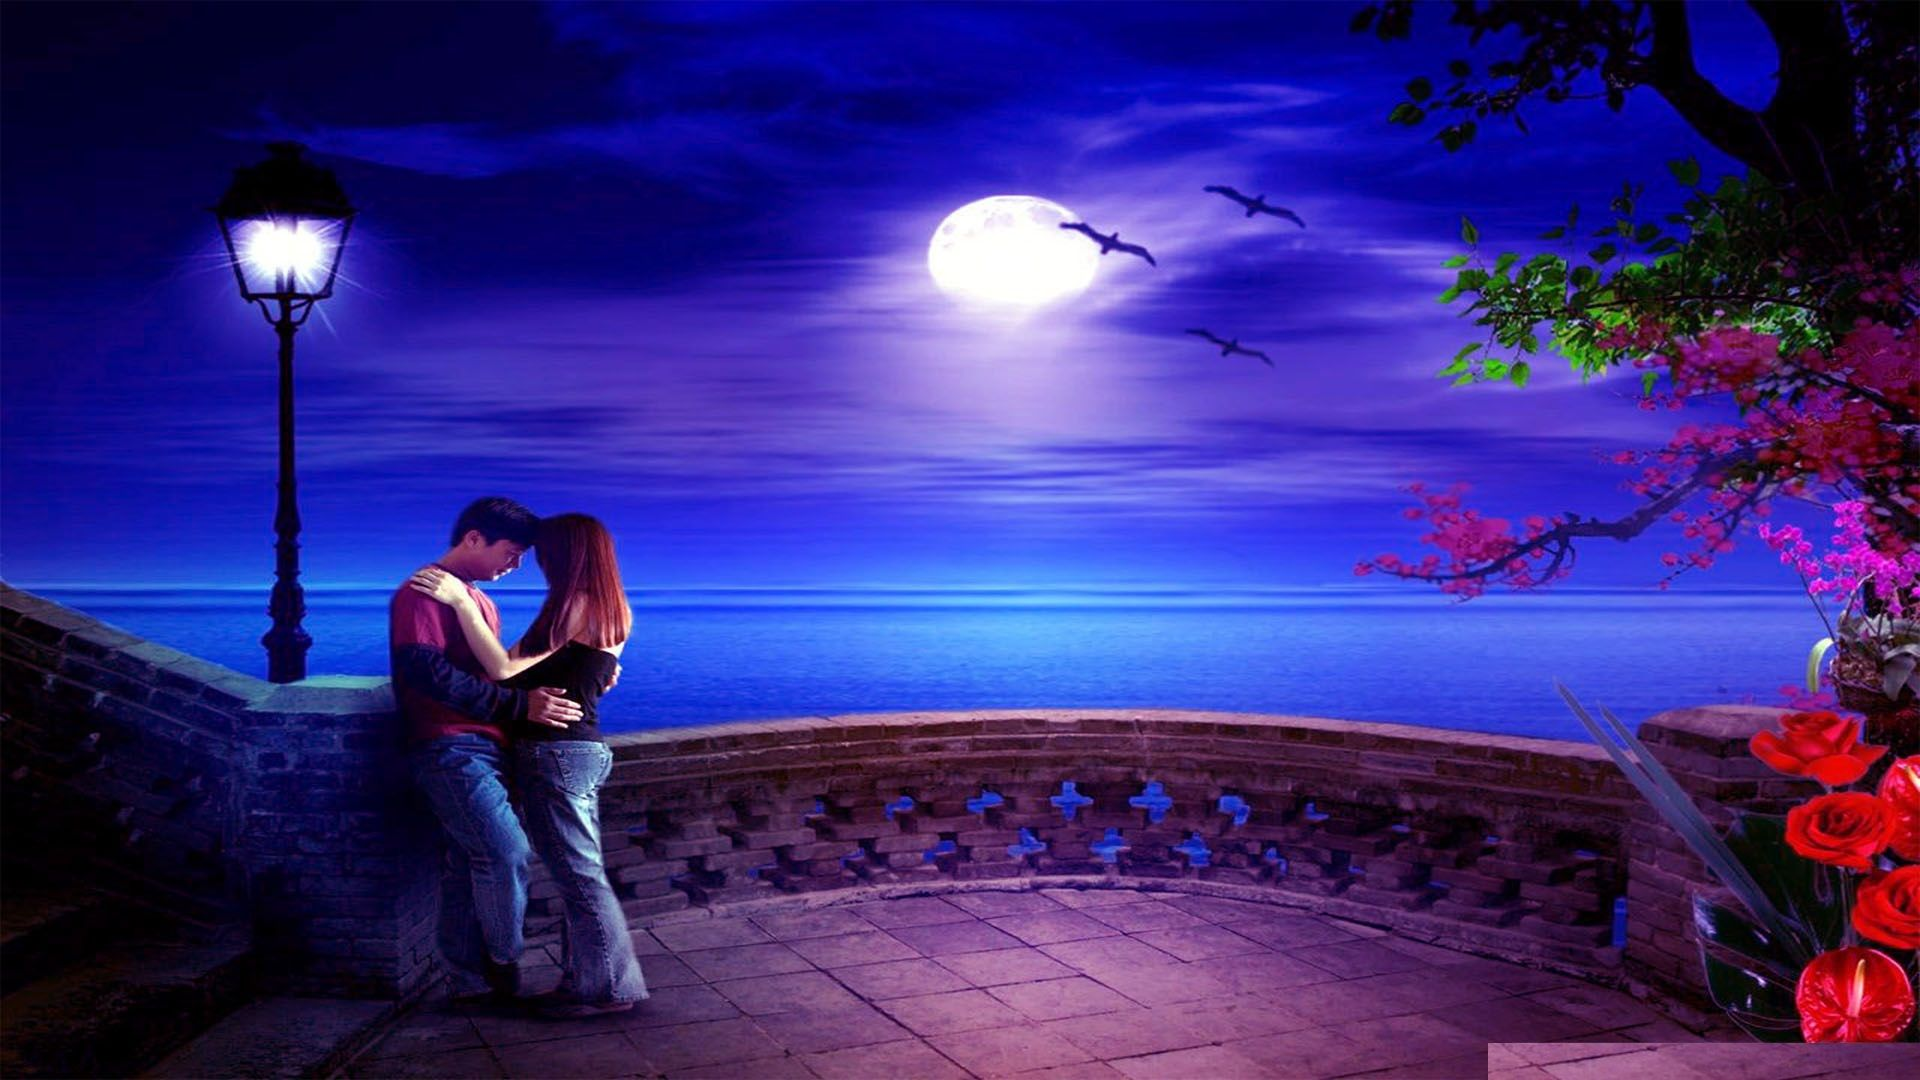 Romantic Love Hd Wallpapers Romantic Background Love Wallpapers Romantic Romantic Scenes